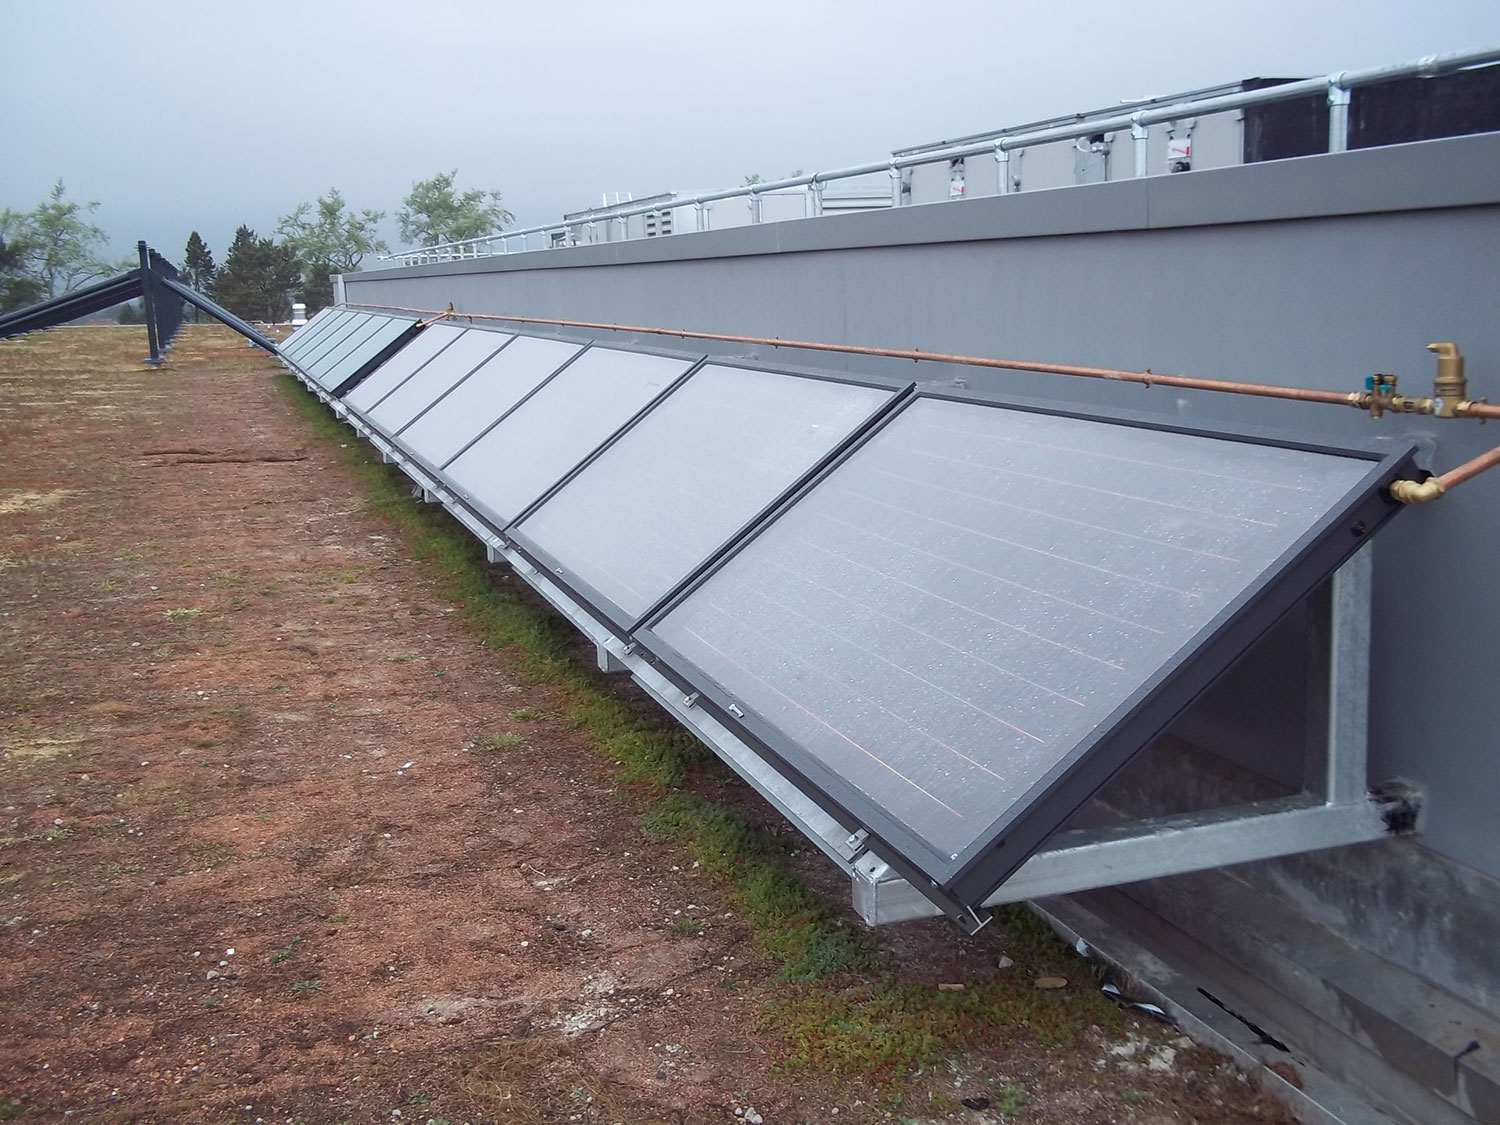 12 x Flat Plate Solar Thermal Collectors generating hot water for changing room showers